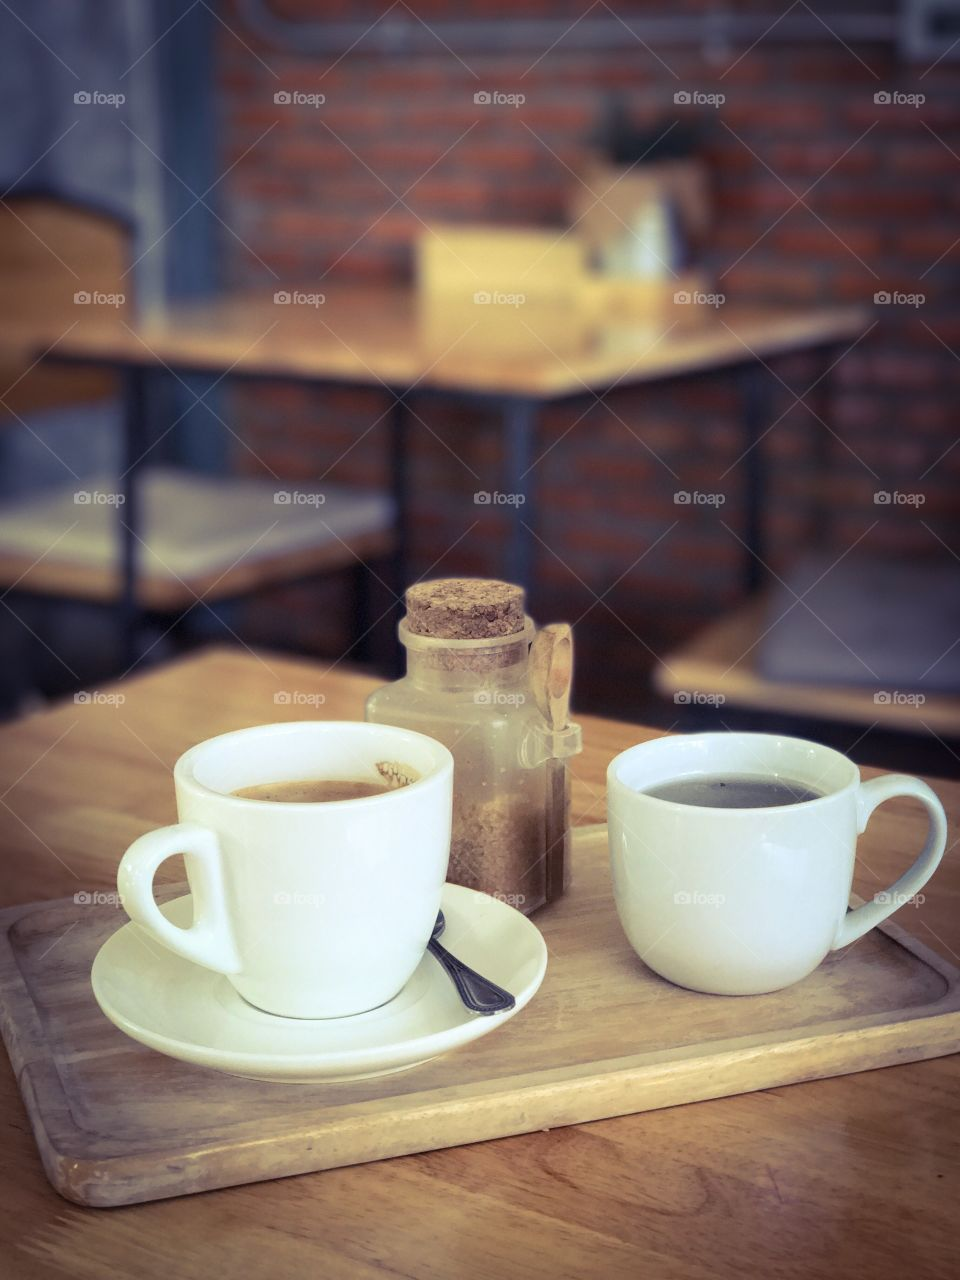 Cup of coffee and tea on wooden table